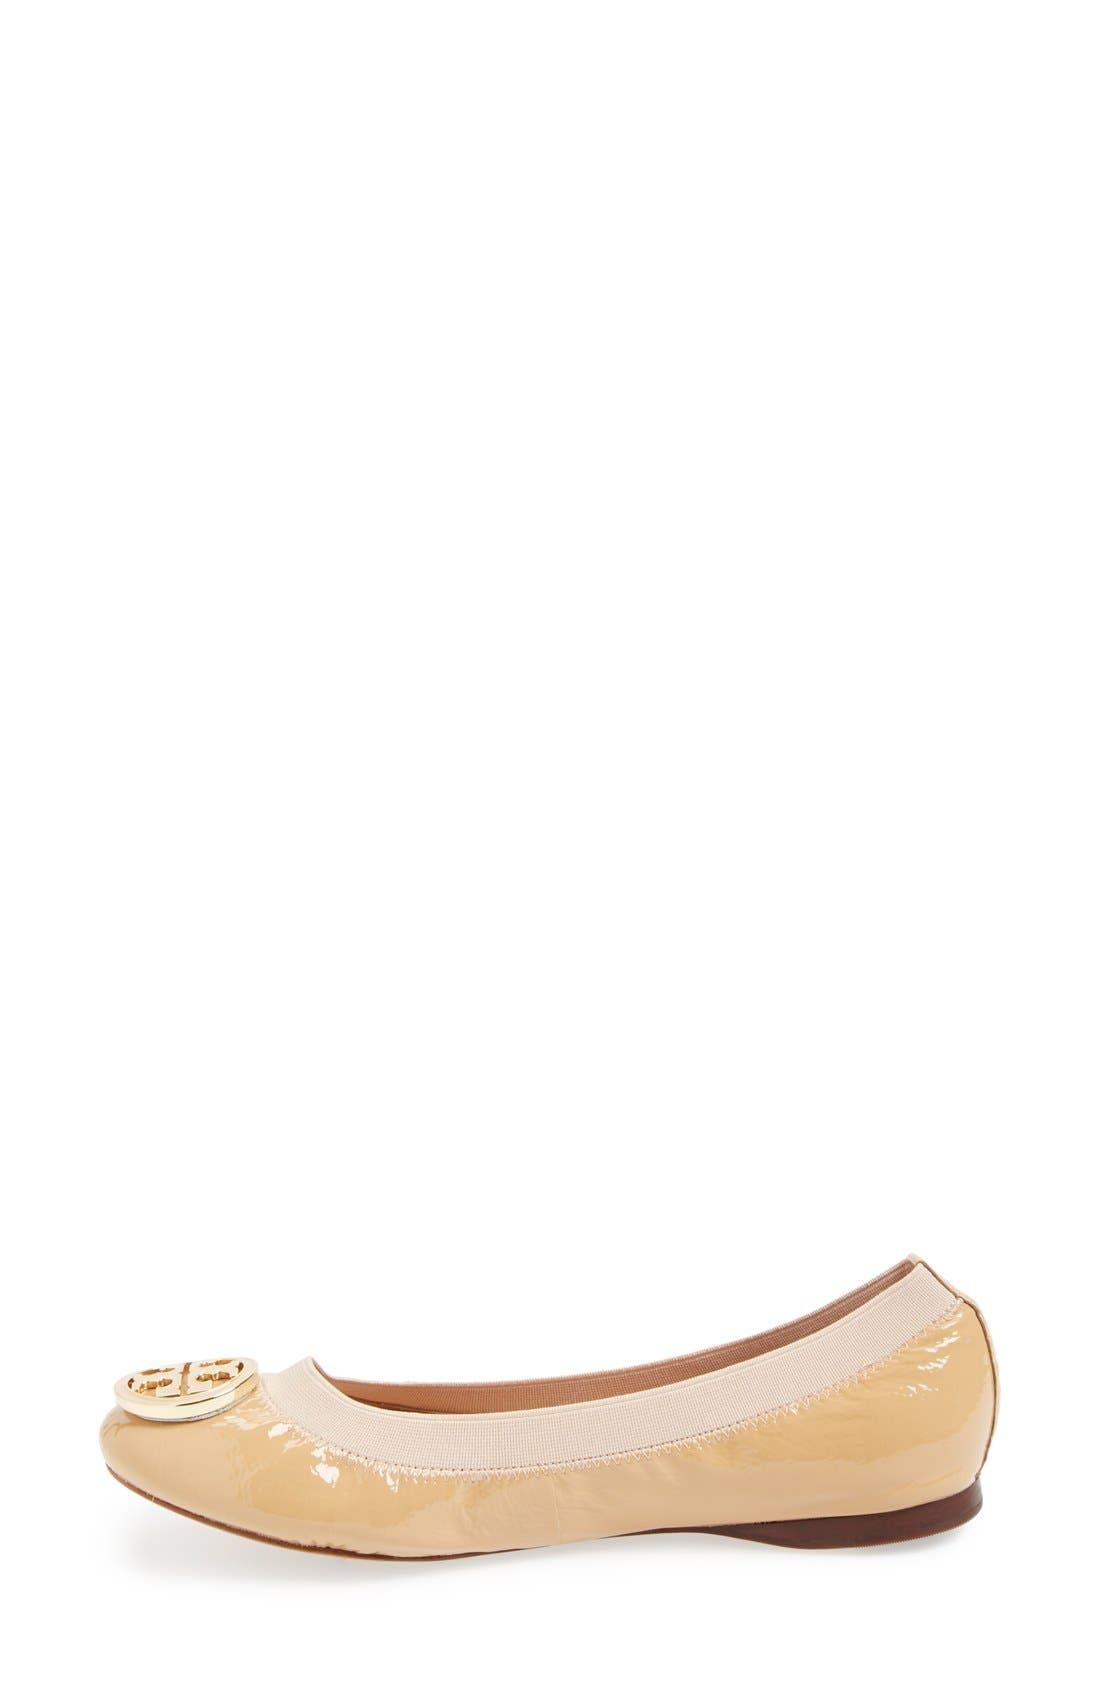 Alternate Image 5  - Tory Burch 'Caroline' Ballerina Flat (Women)